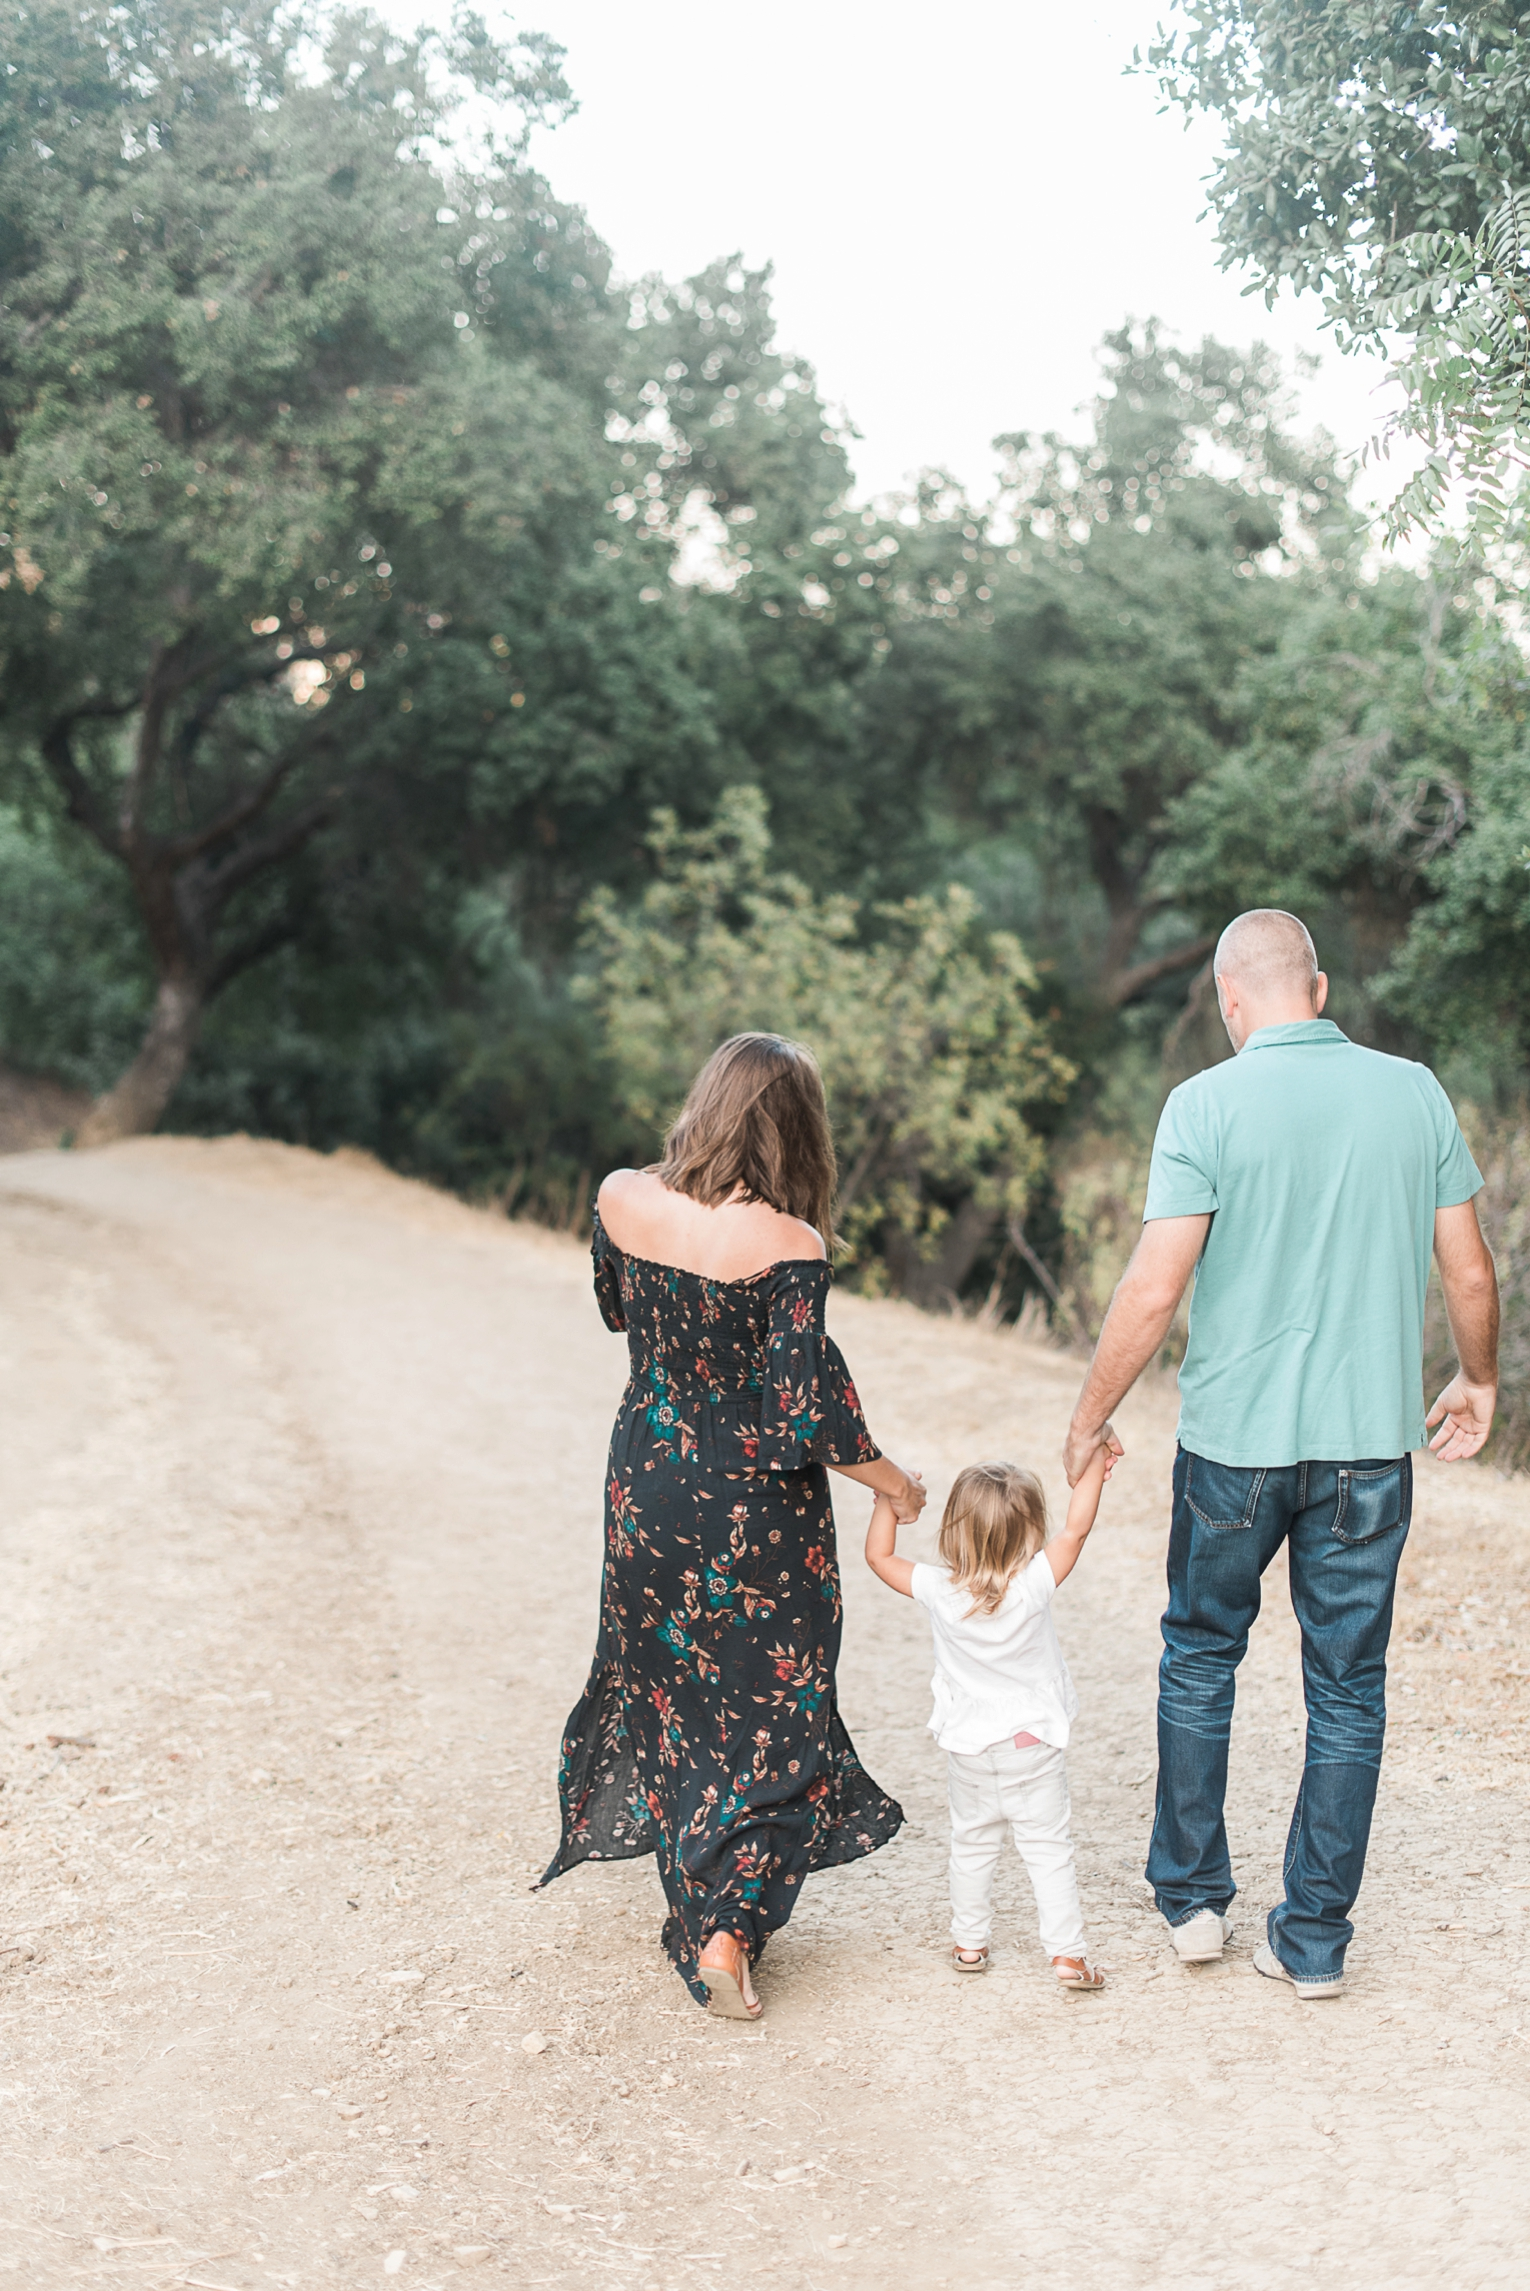 Los Angeles Griffith Park Maternity Photos Family Walking